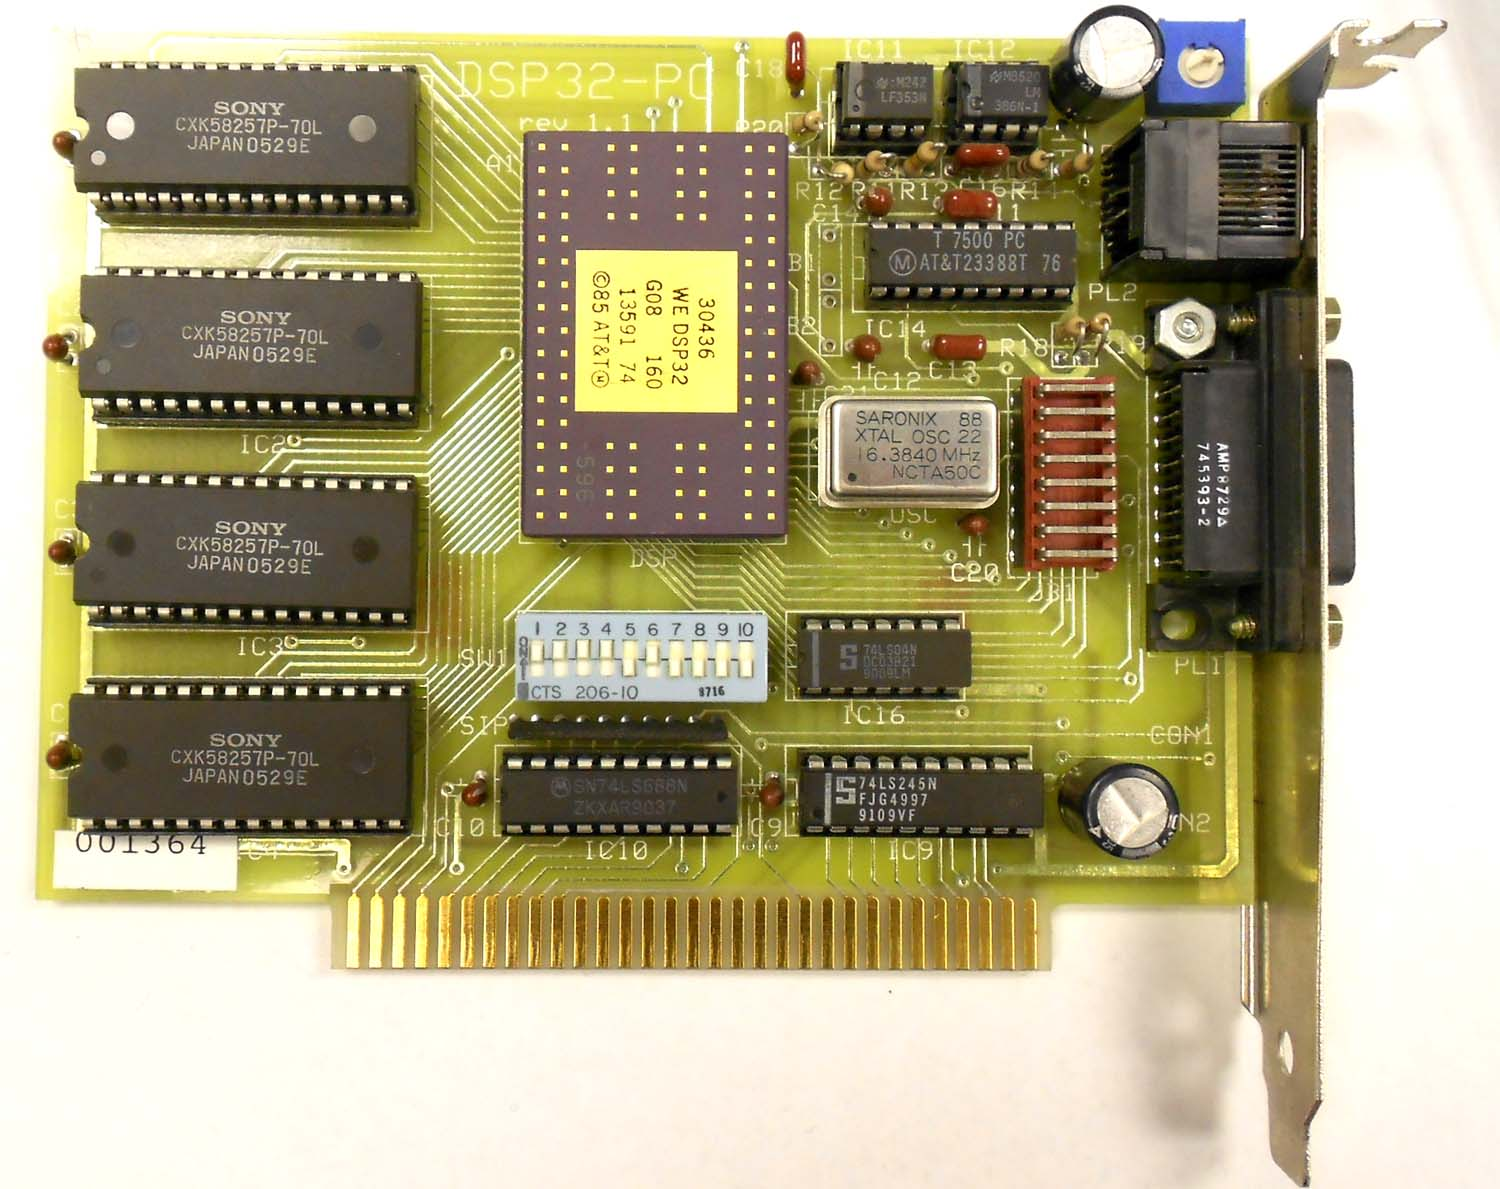 Legacy and Obsolete DSP and Data Acquisition Boards